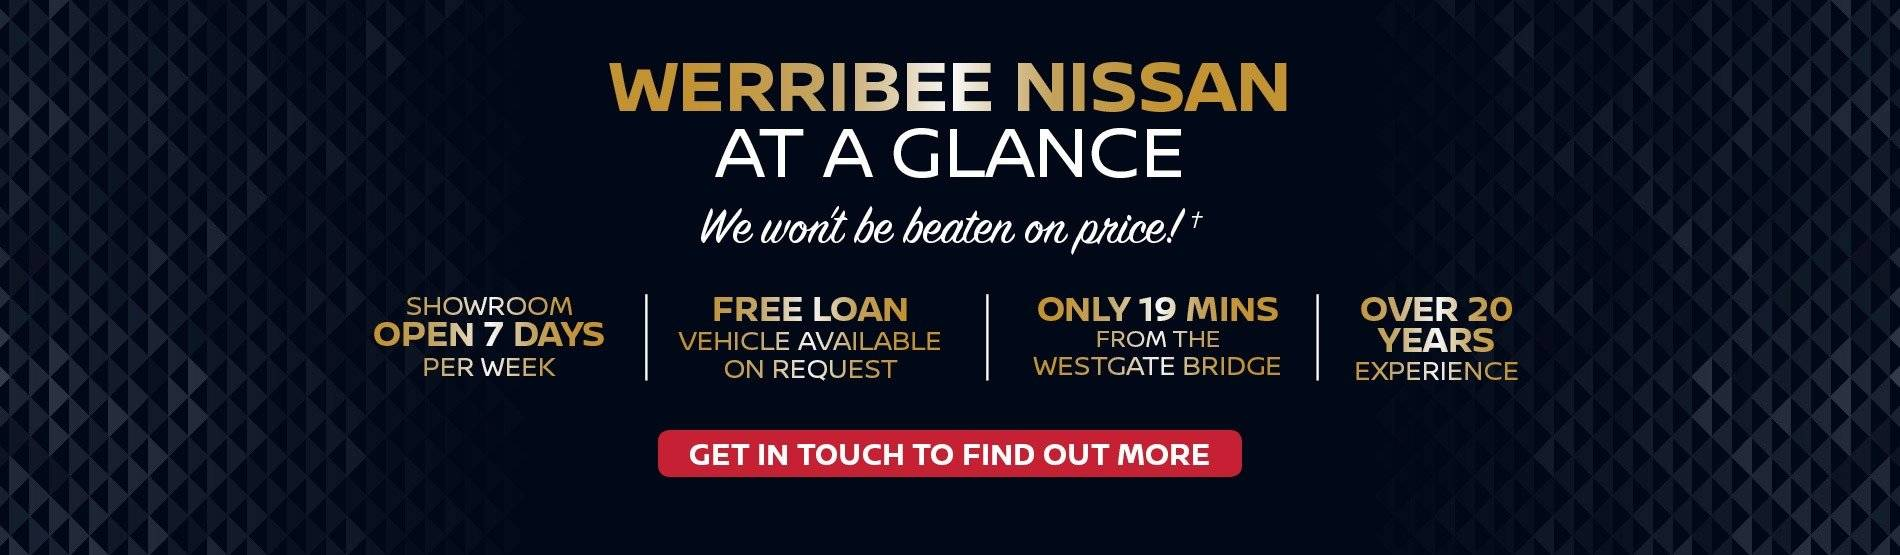 Werribee Nissan - At A Glance